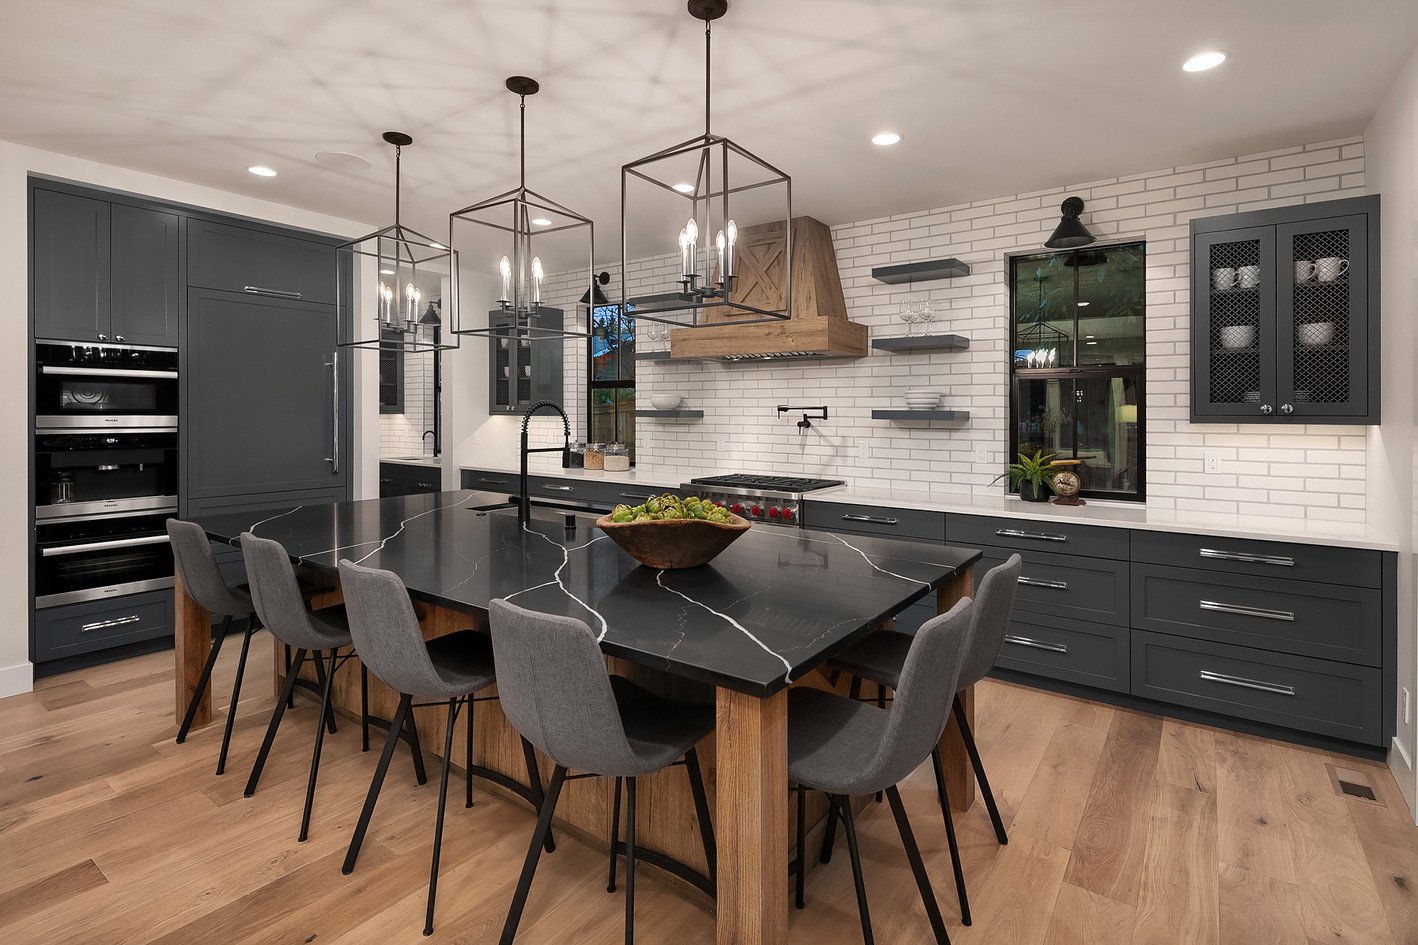 Blue Farmhouse Kitchen with X Island and